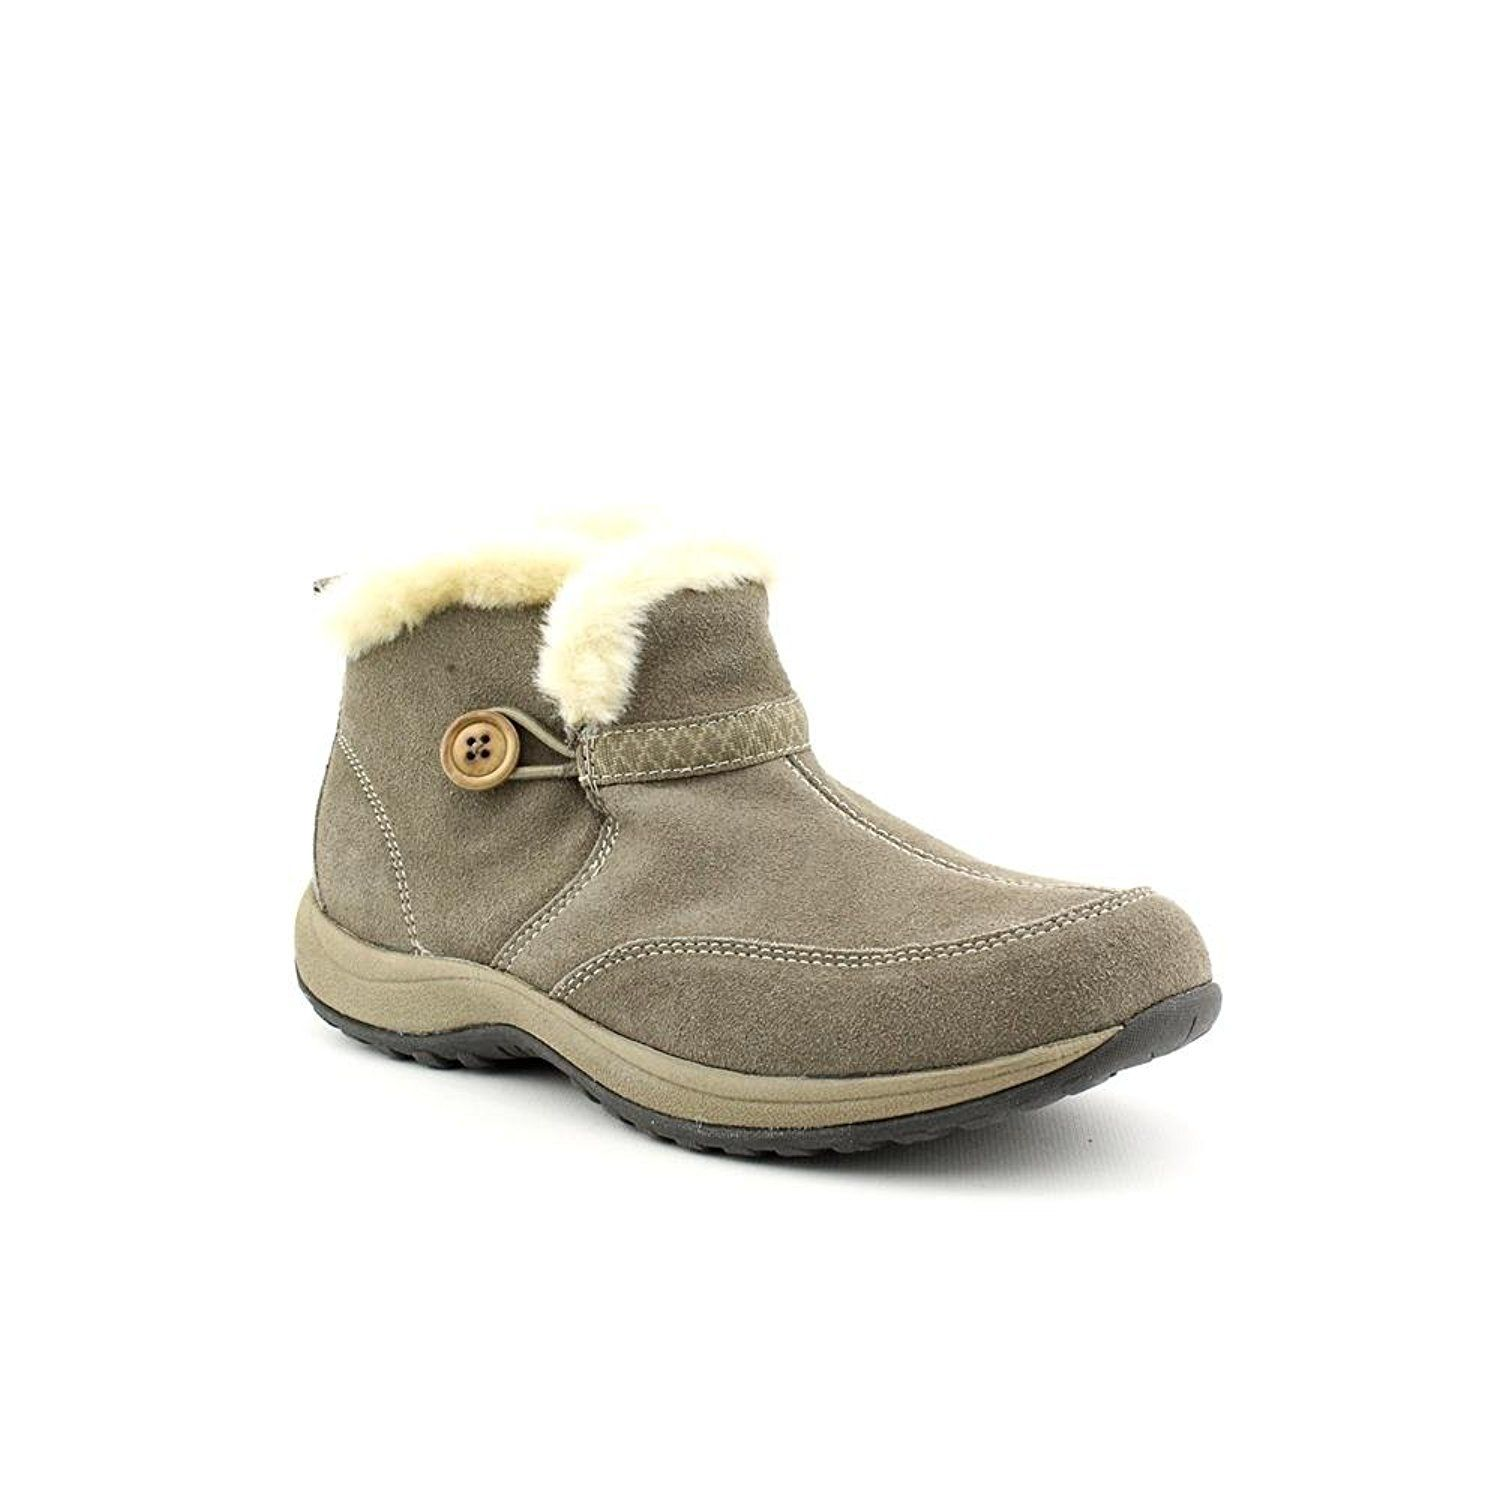 cf4520e8c Easy Spirit Skilift Womens Size 6 Gray Suede Fashion Ankle Boots ** More  info could be found at the image url. #boots